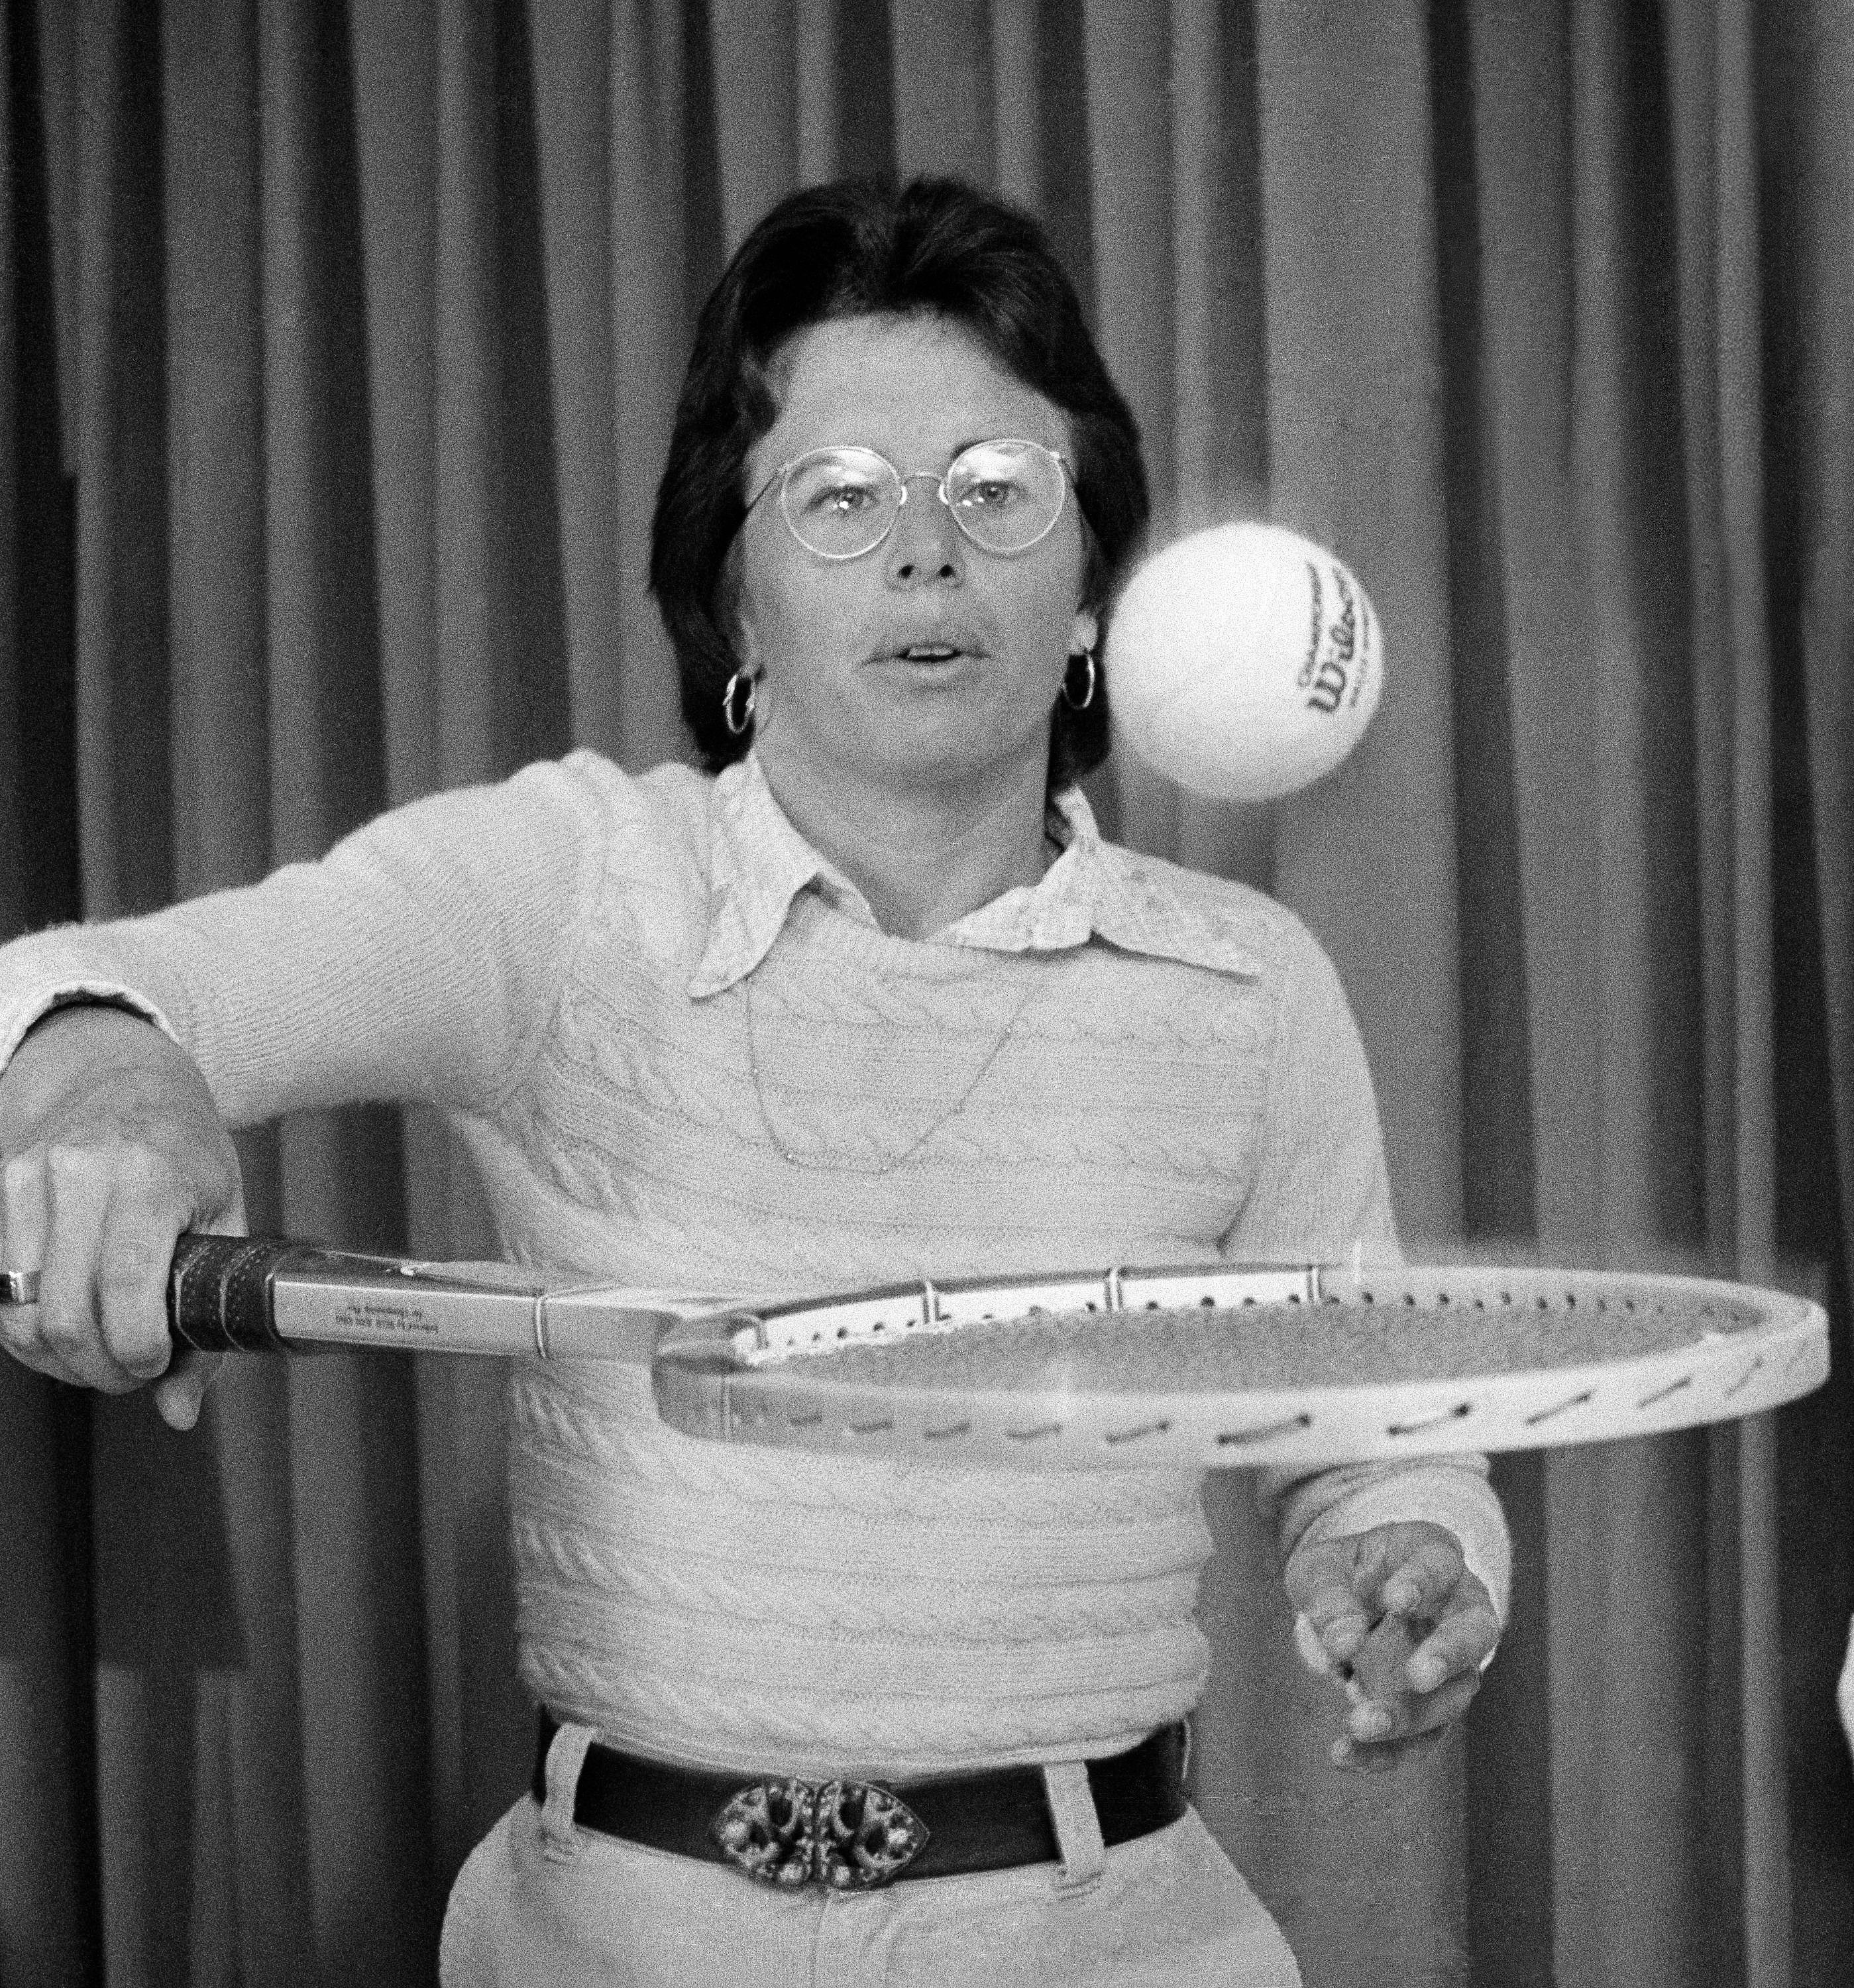 Billie Jean King, who did her thing against Boby Riggs is shown in Philadelphia Monday, Sep. 24 1973 as she came here to kick off the World Team Tennis League in which she's scheduled to be player-coach of the Philadelphia team. (AP Photo/wgi)